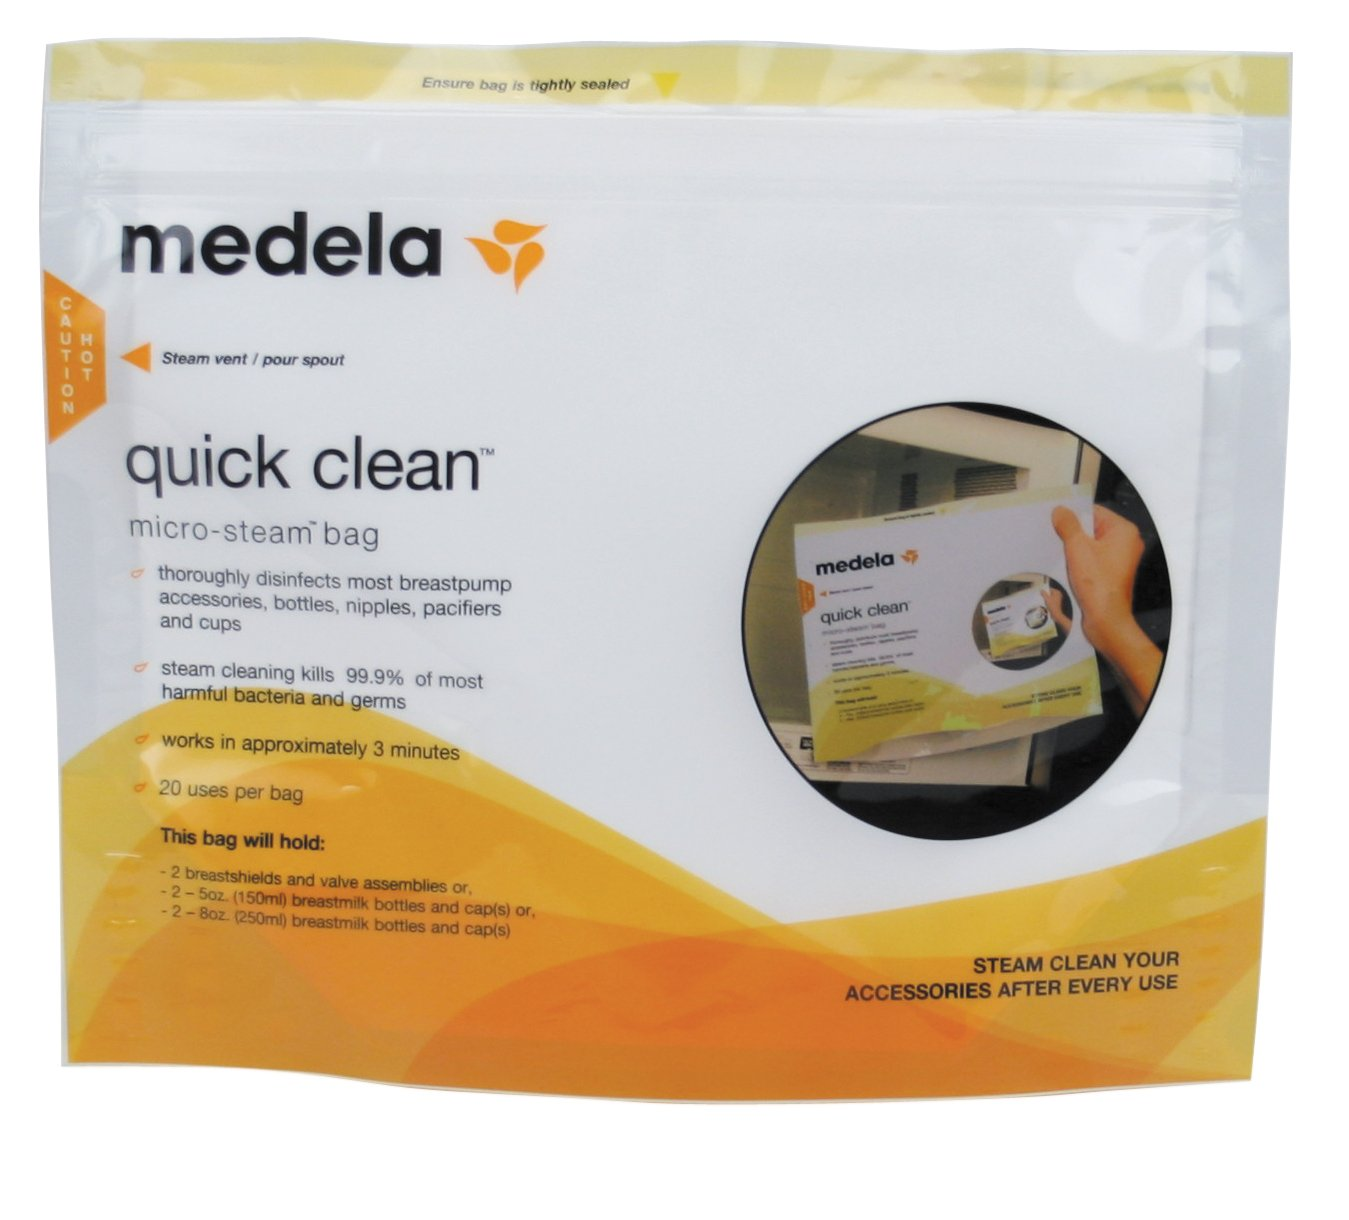 Medela Breast Pump Accessory Set, Value Pack Includes Breastmilk Bottles, Breast Shields and More, Authentic Medela Spare Parts Made Without BPA